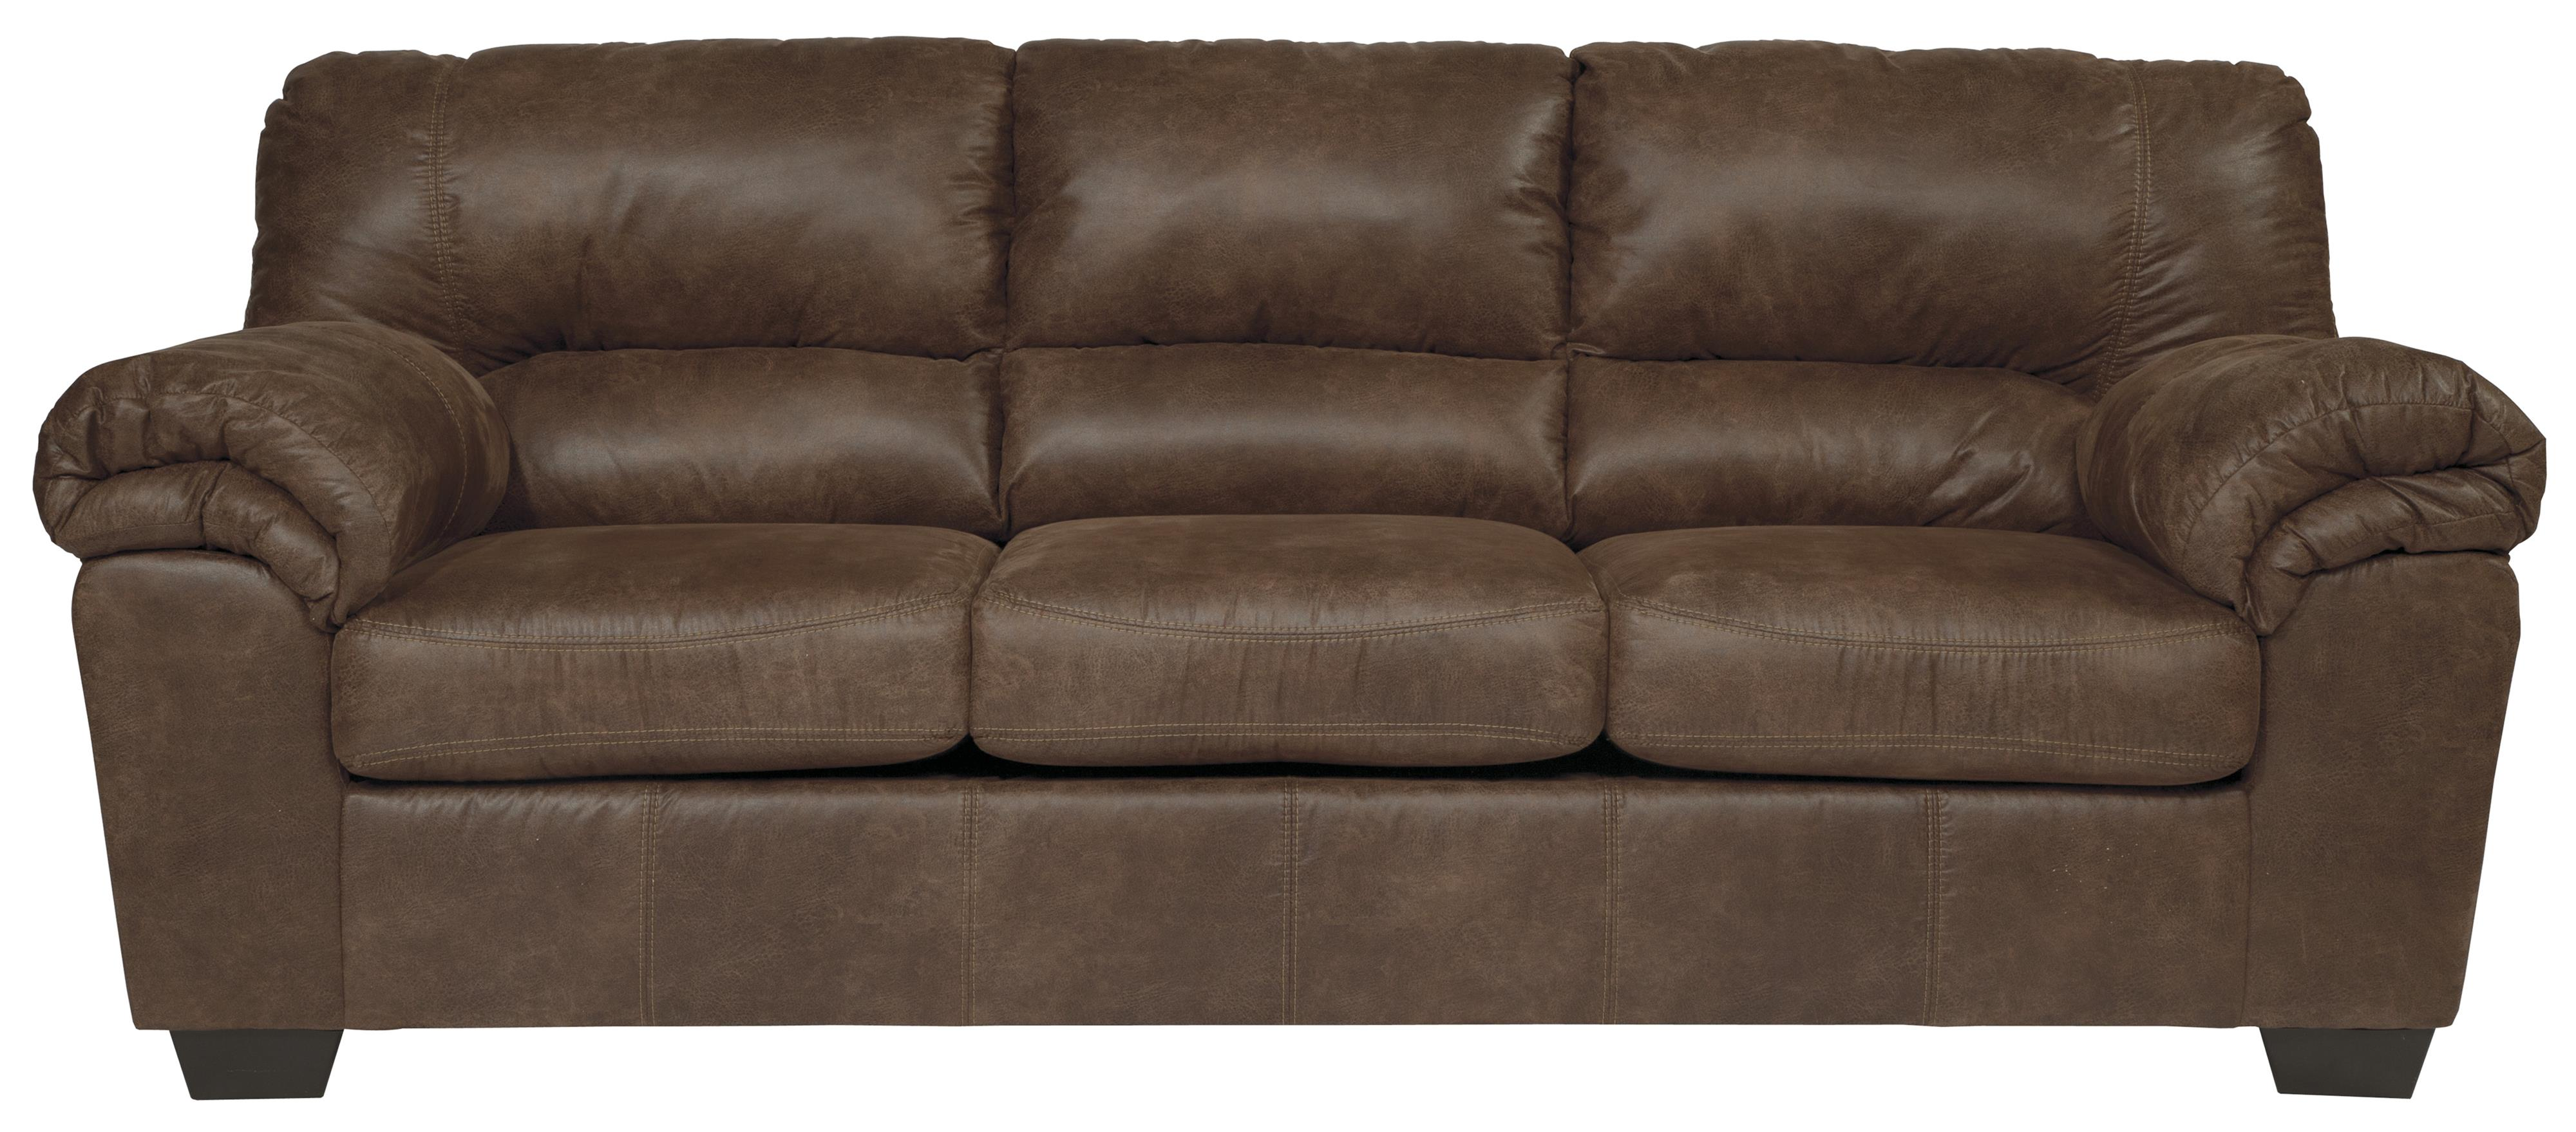 Faux Leather Chair Casual Faux Leather Sofa By Signature Design By Ashley